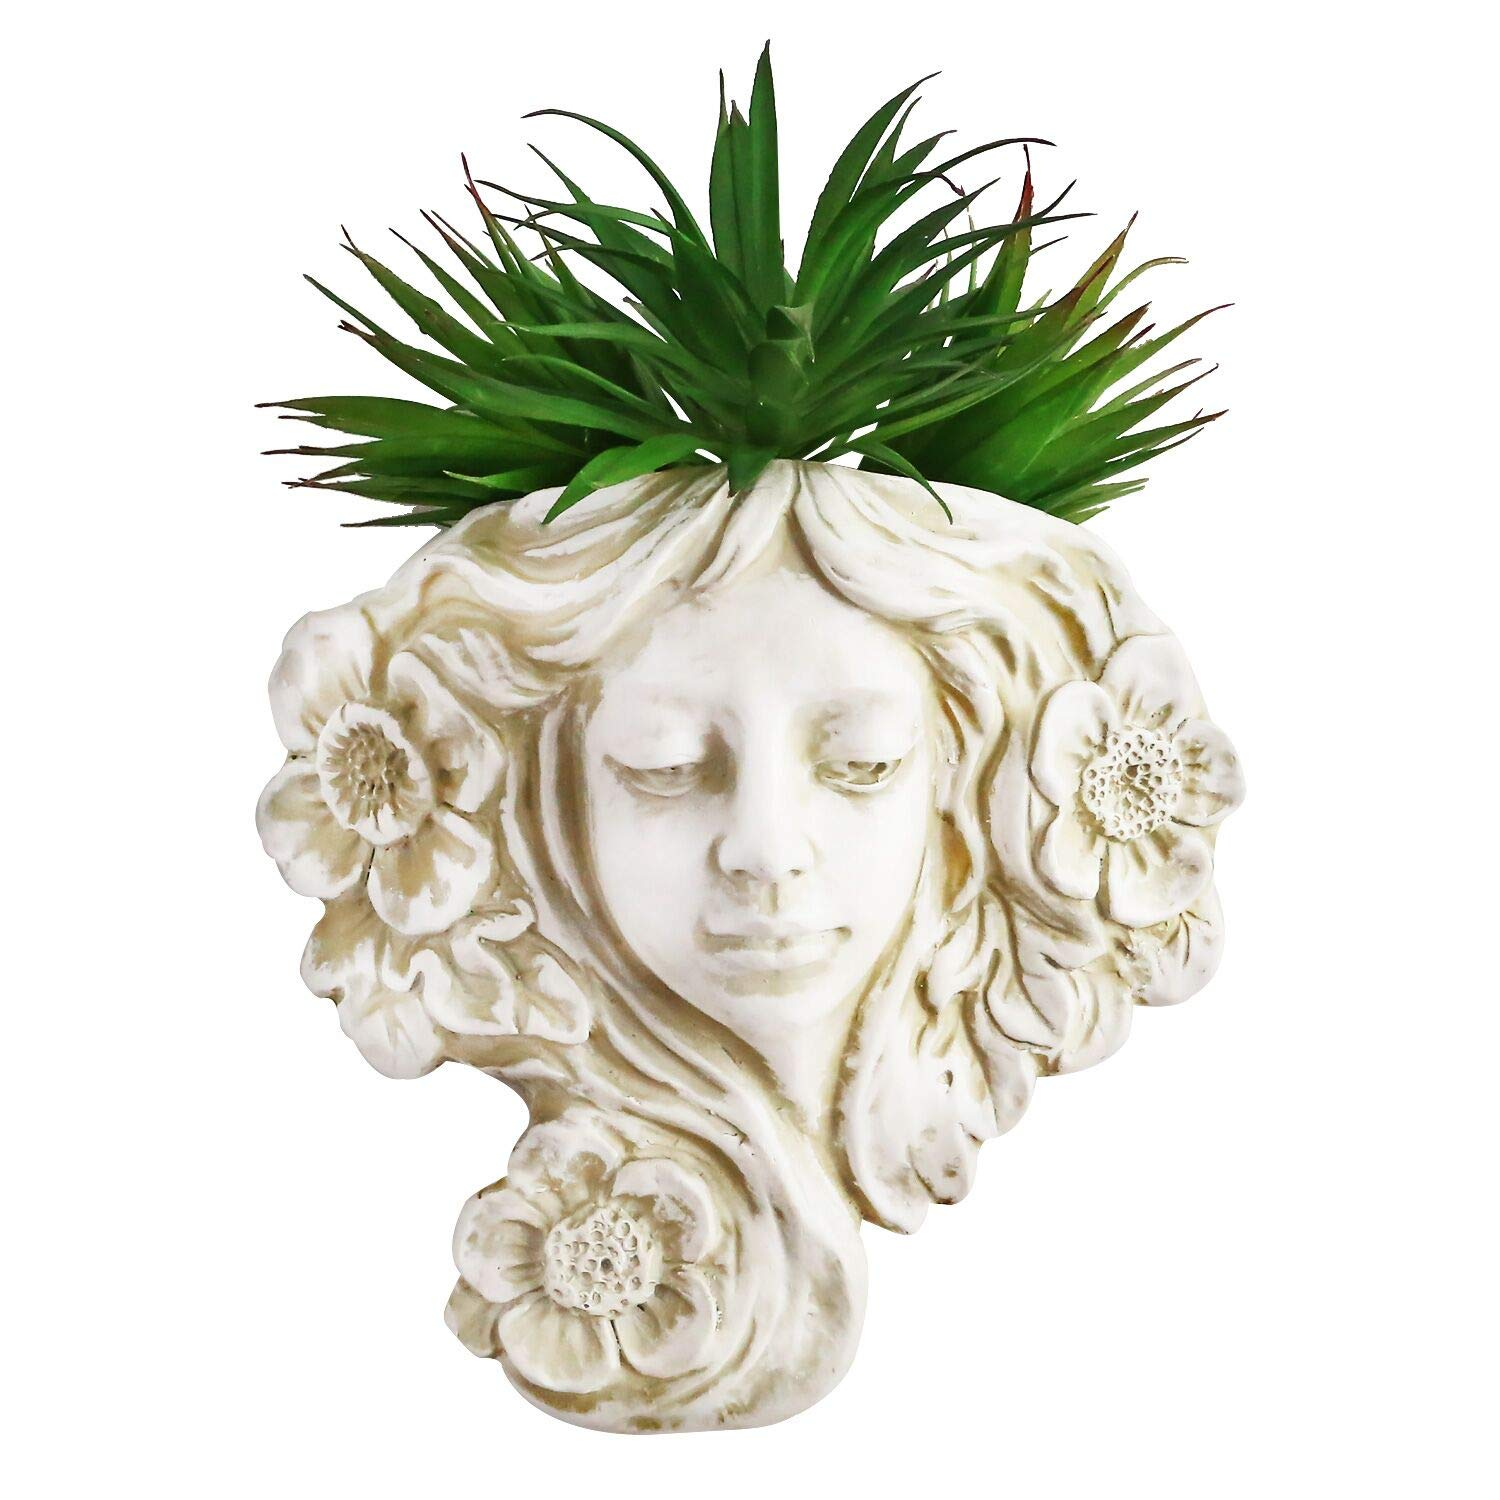 simpdecor Hanging Plant Pot & Wall Mounted Planter Vase, Angel Hanging Wall Decoration -Great for Succulent Plants Faux Plants Indoor or Outdoor Hanging Decor